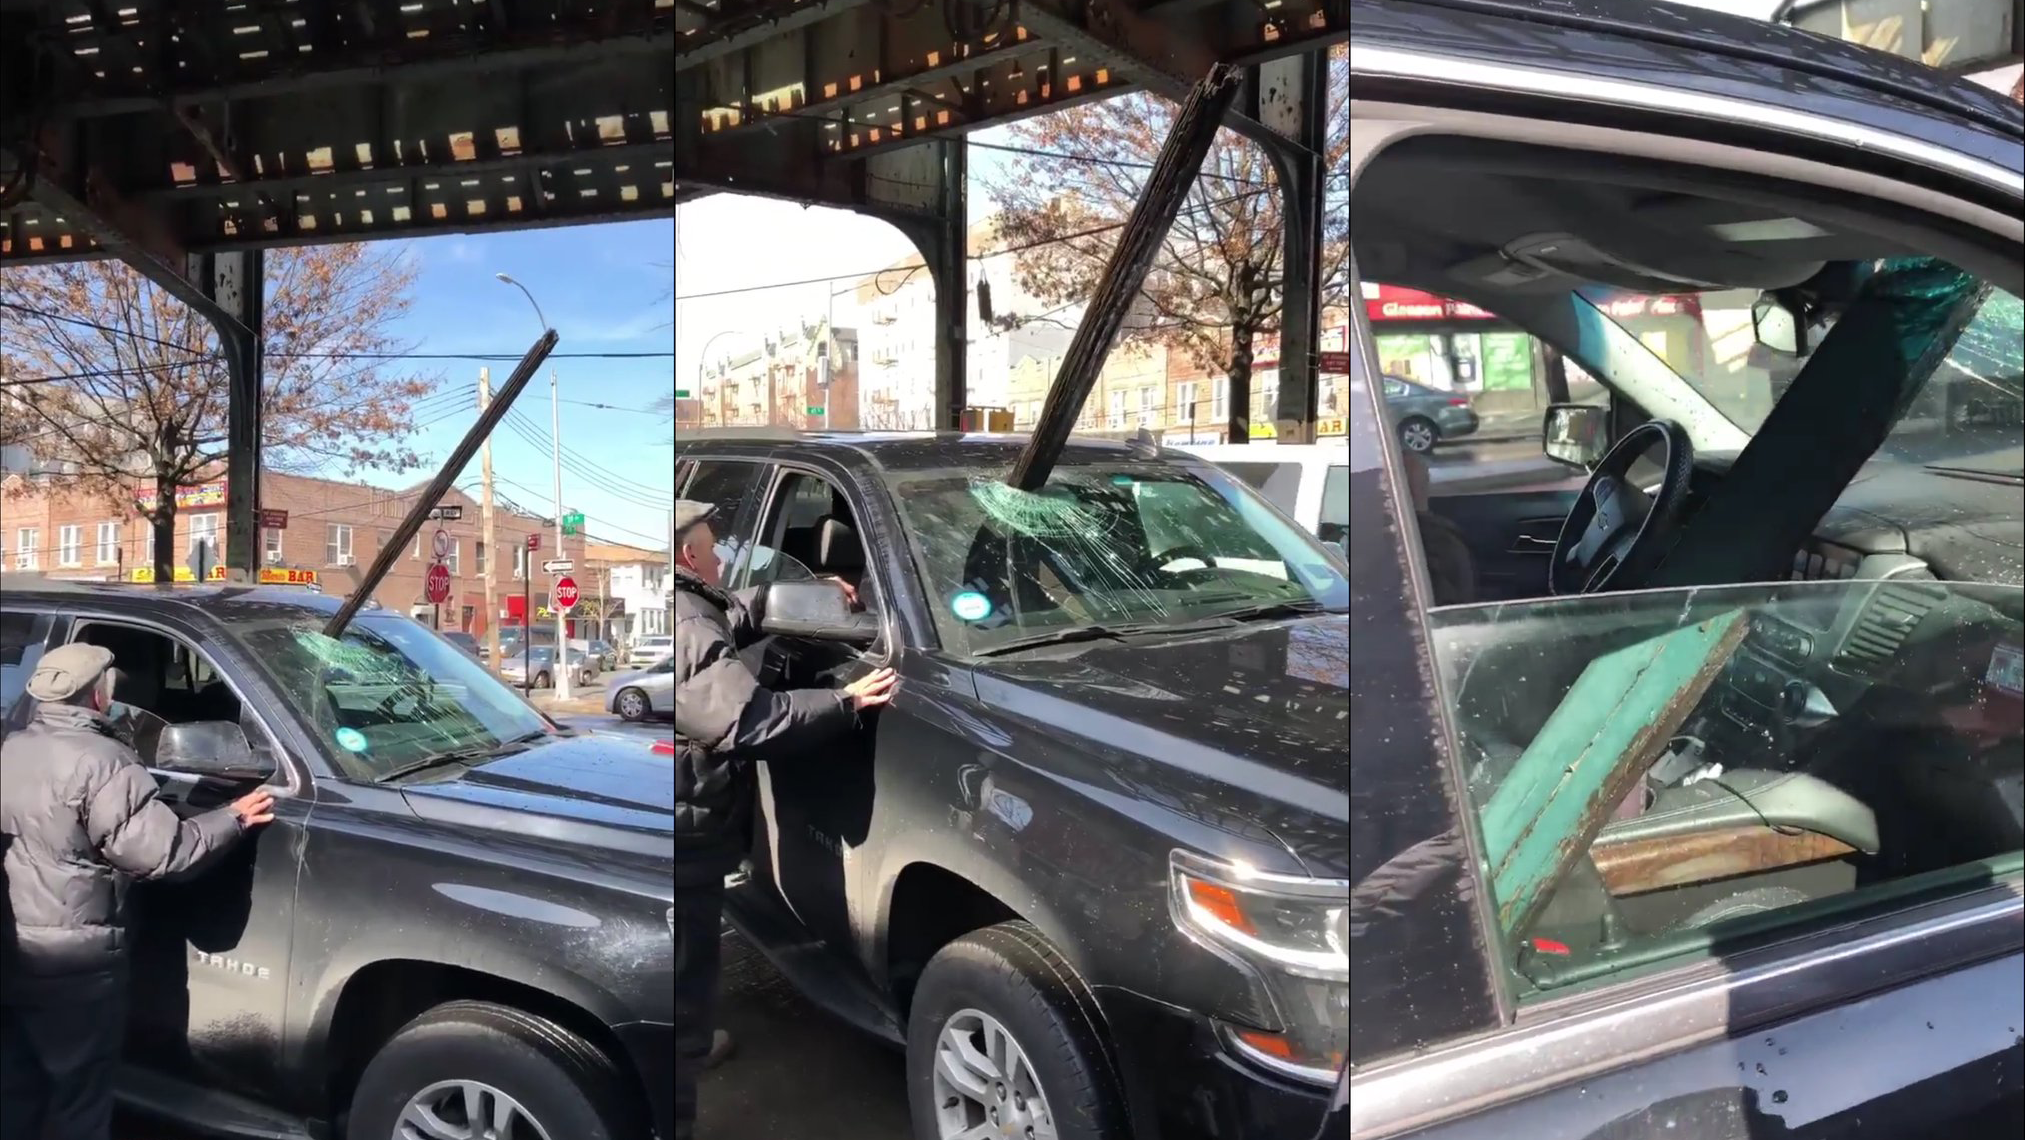 Giant Chunk of Elevated Subway Crashes Through Windshield of Moving Car